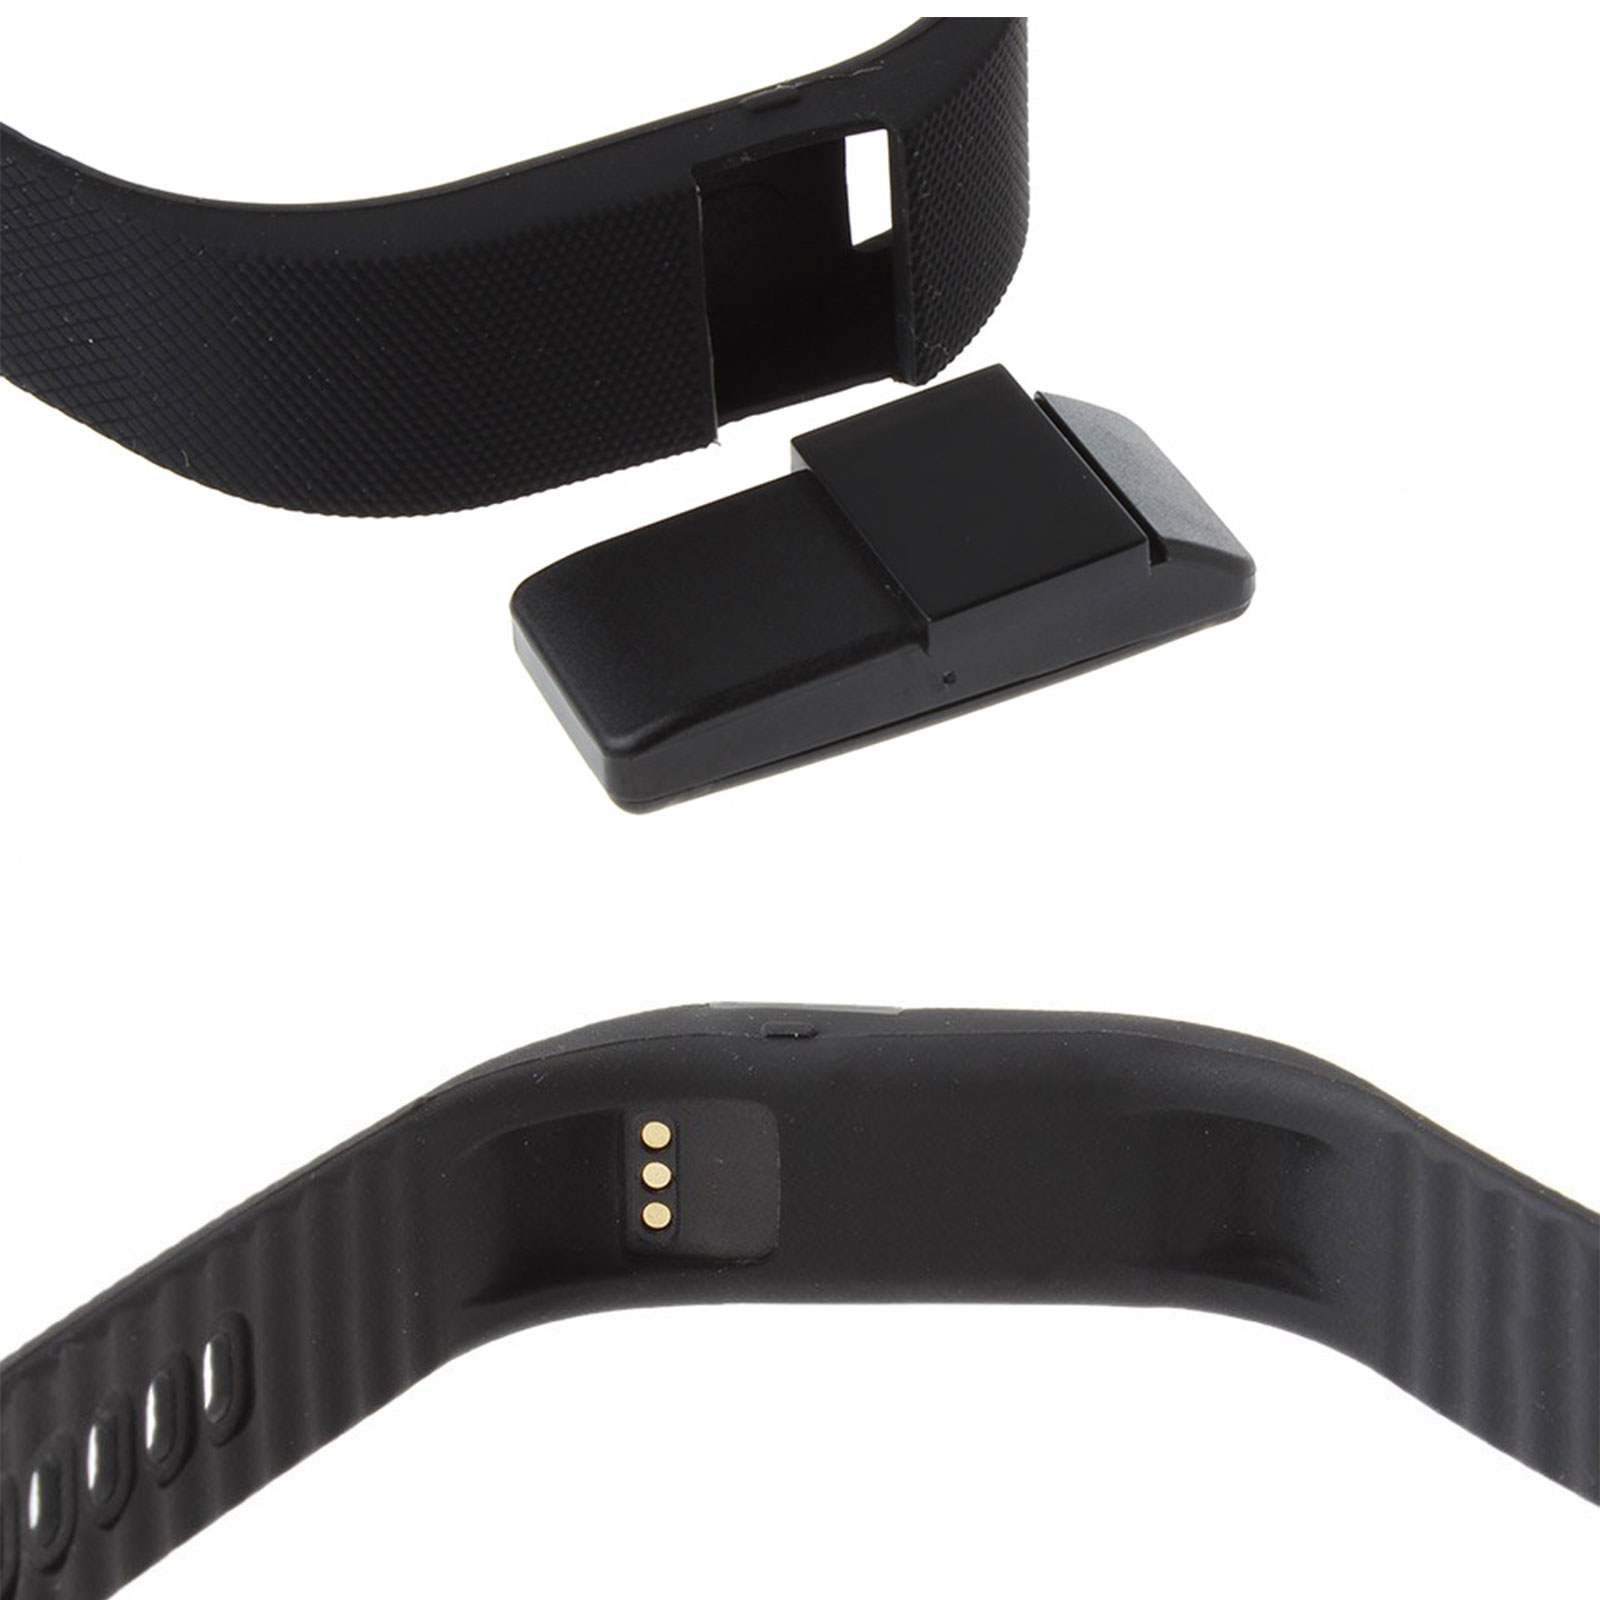 Smart Watch Bracelet 4.0 Wrist Band port Health Activity Tracker 24 UK (Black Colour)